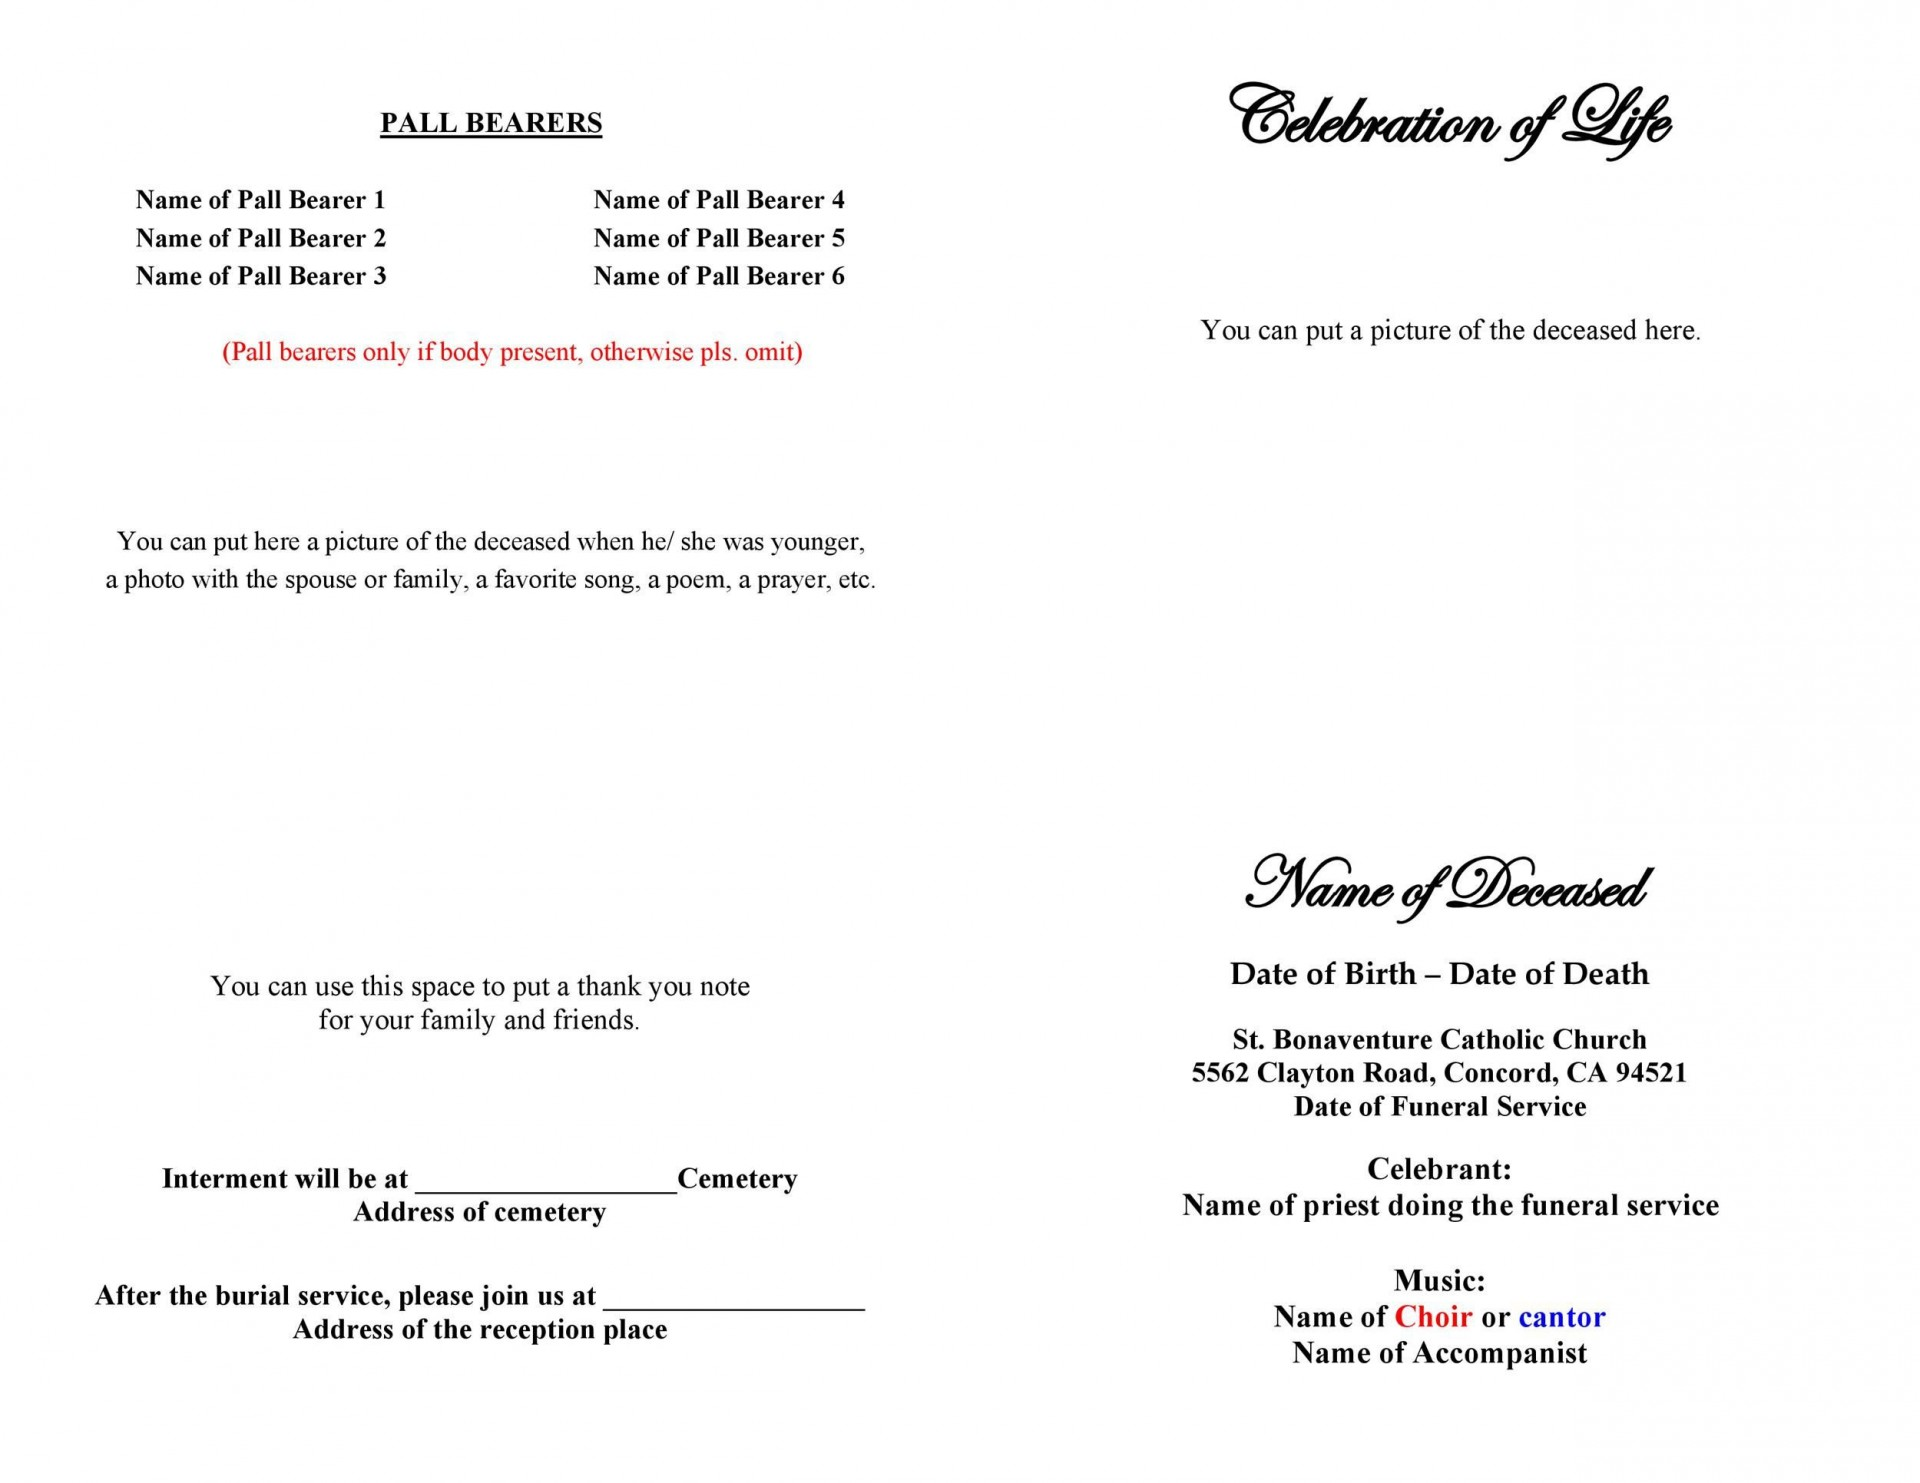 006 Breathtaking Celebration Of Life Word Template Free Example  Program1920